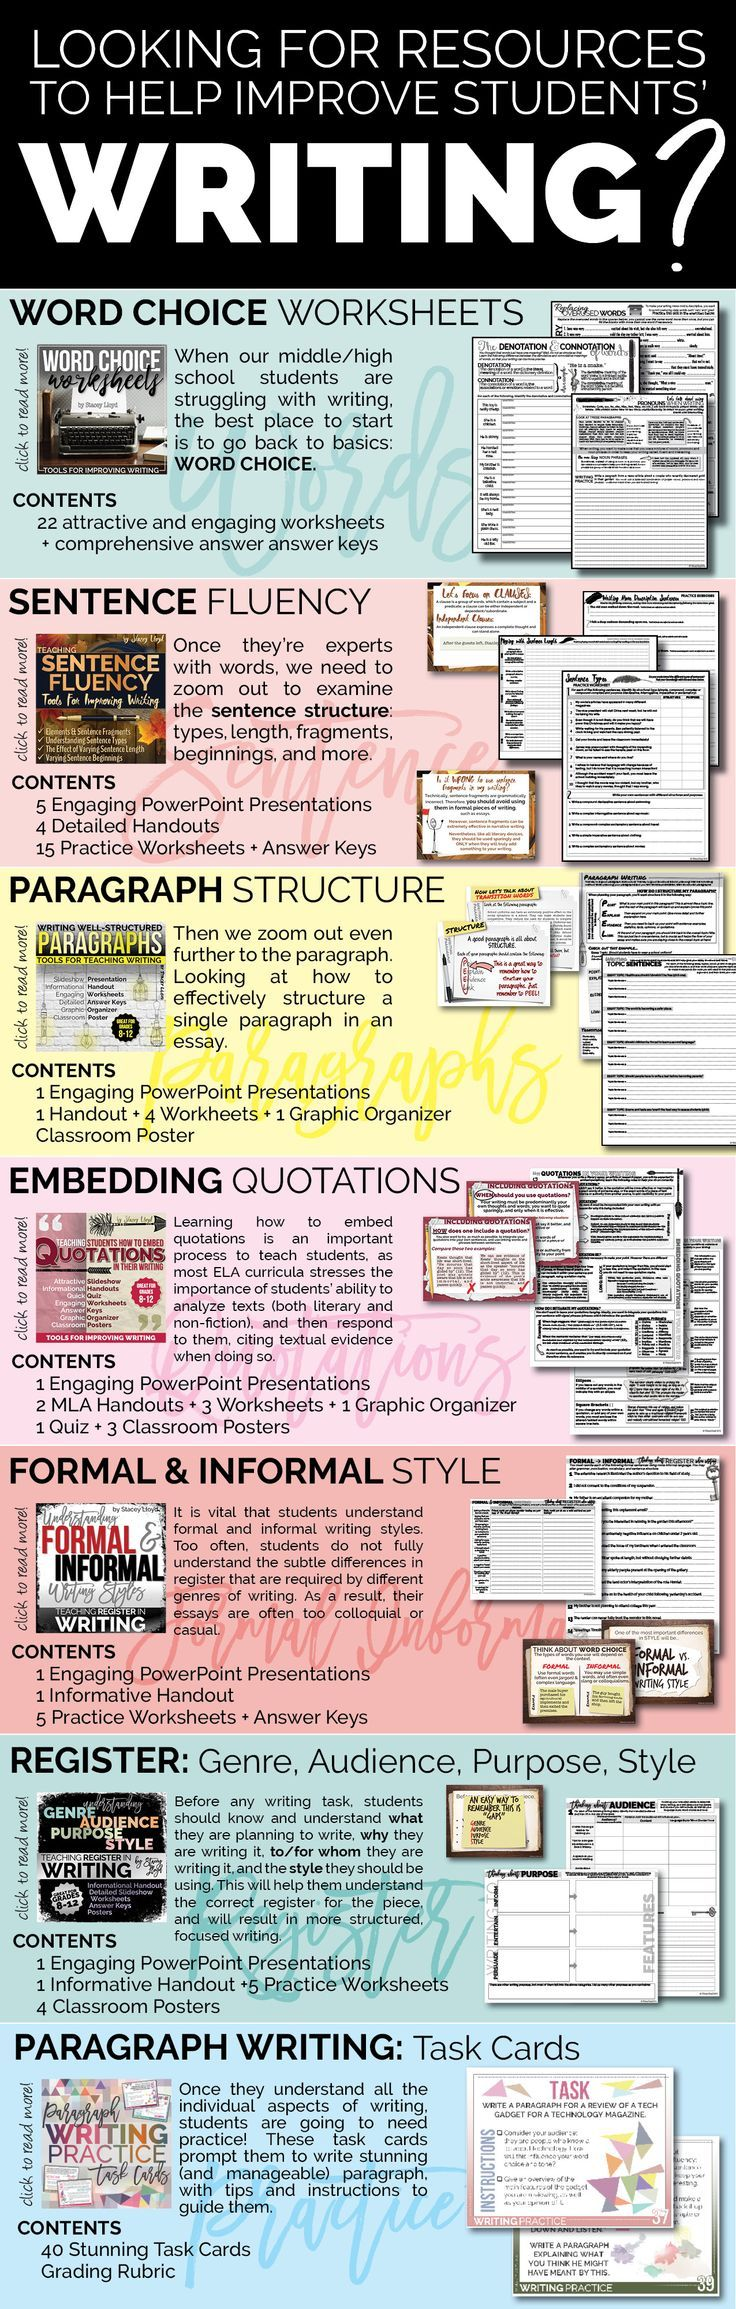 essay hooks infographic thesis statement hooks and critical essay 7 engaging products to help improve students writing skills